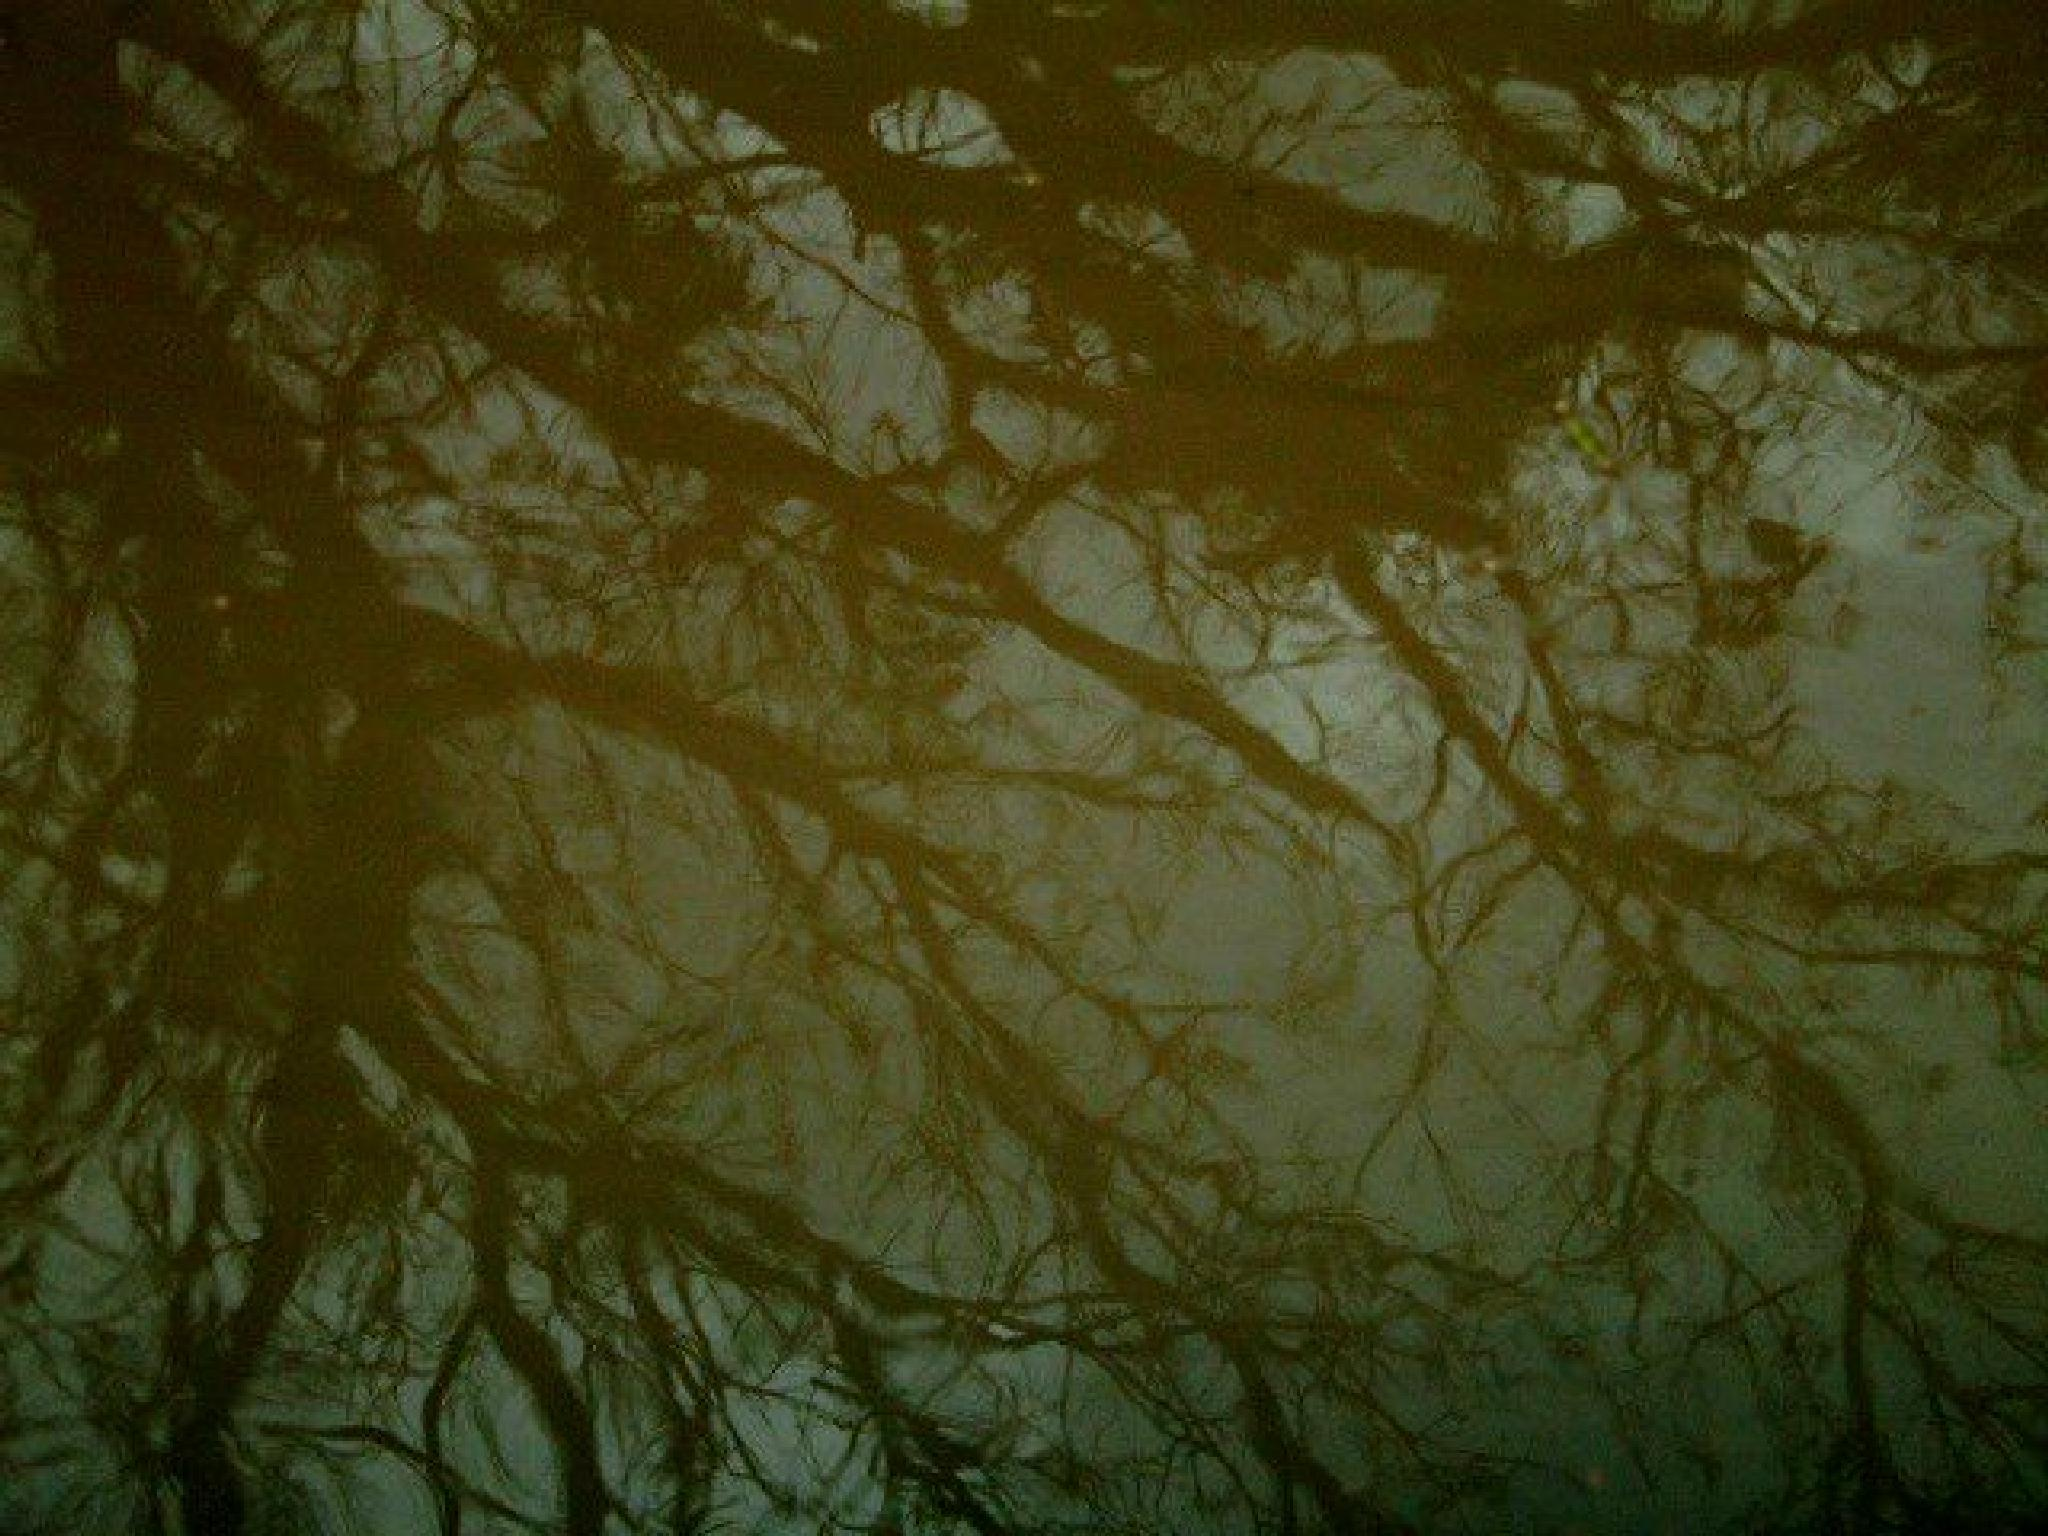 reflection of trees on a roadside pool of water  by annapoorna.sitaram